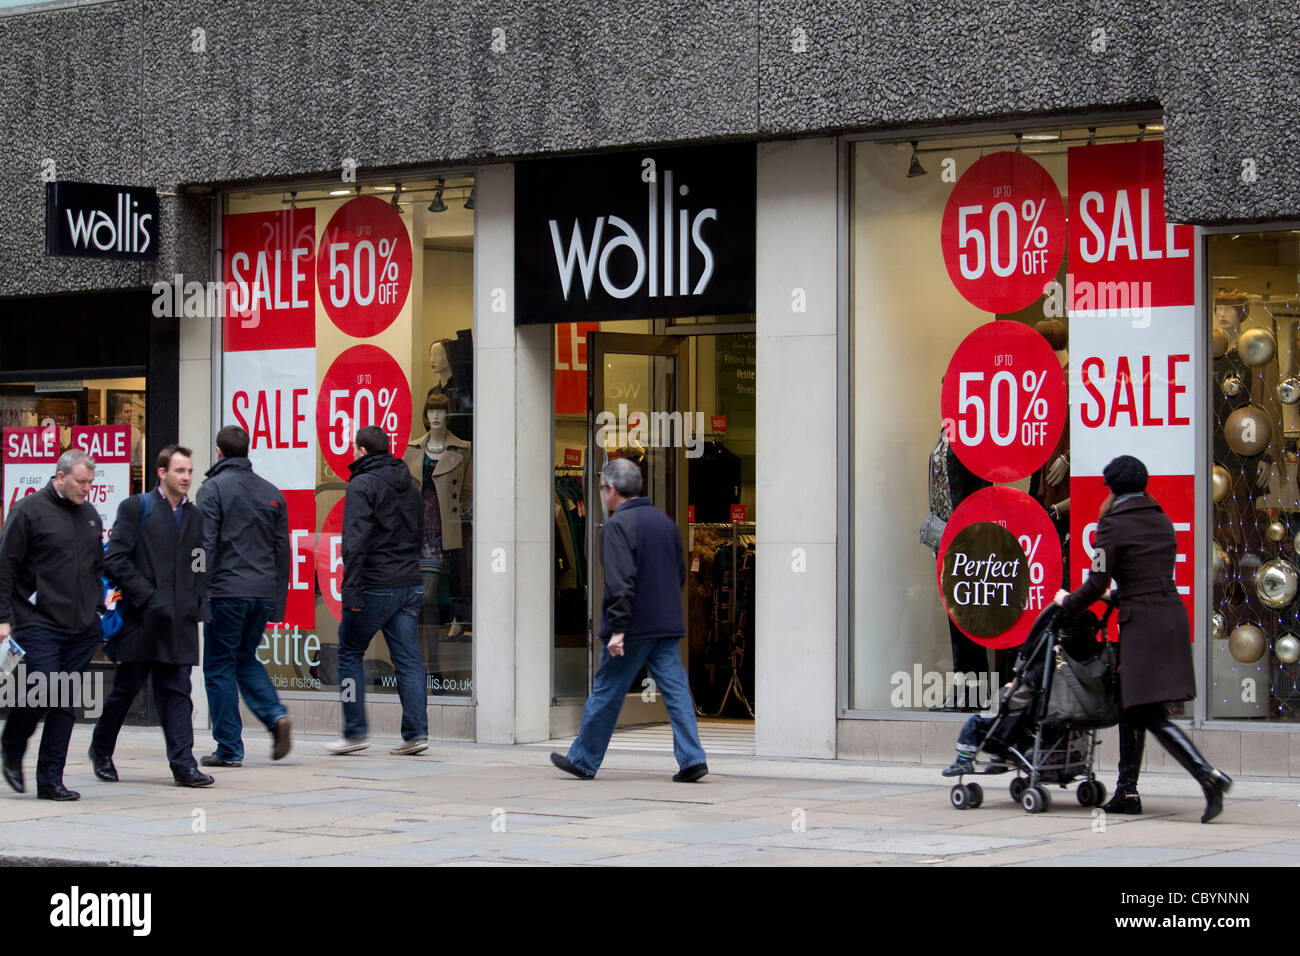 Wallis clothing retail outlet cheapside London - Stock Image